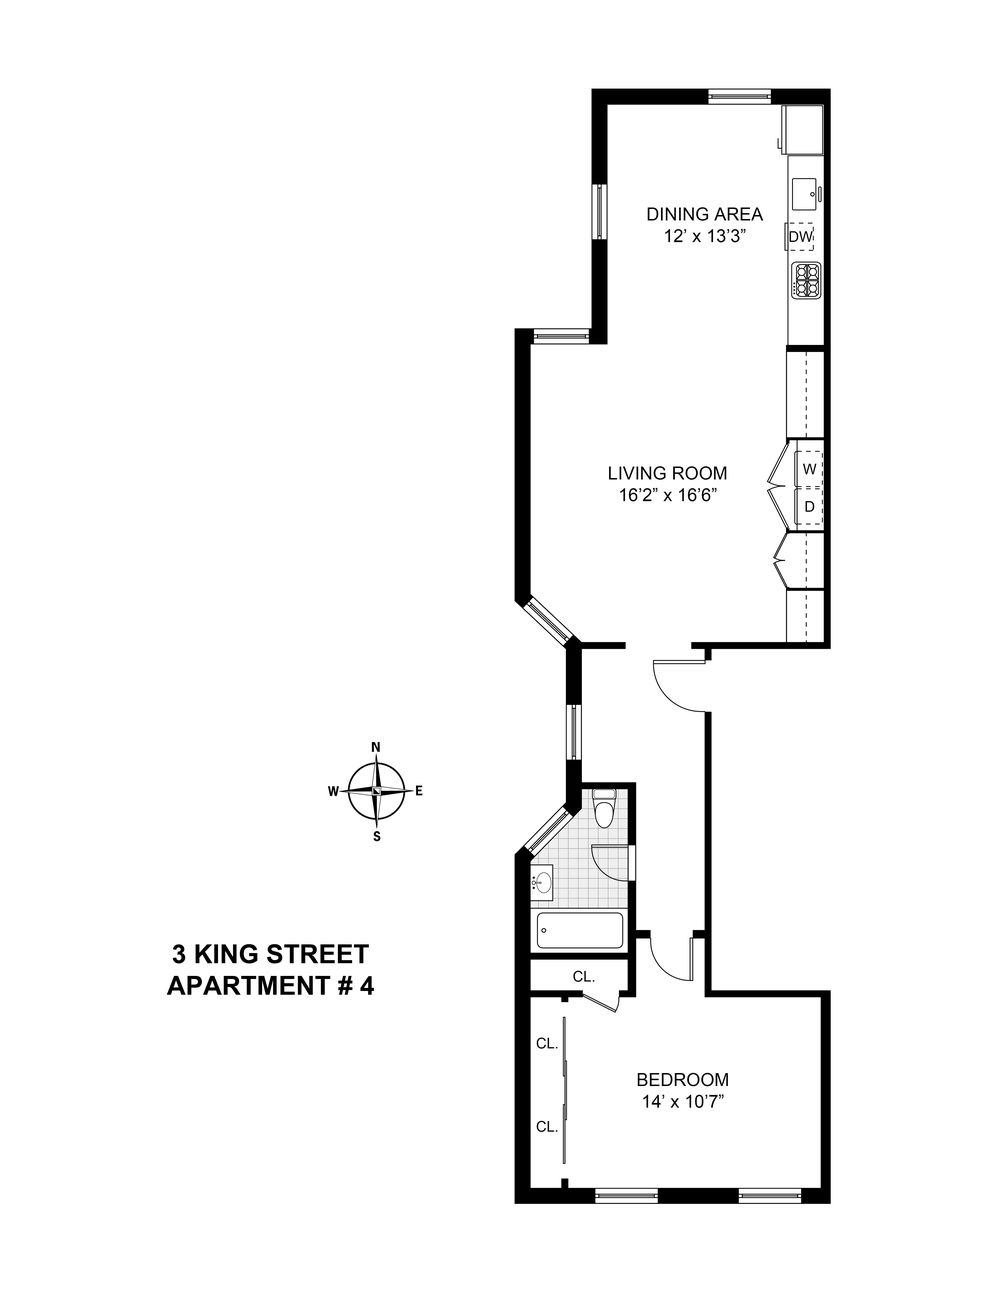 king street floor plan.jpg